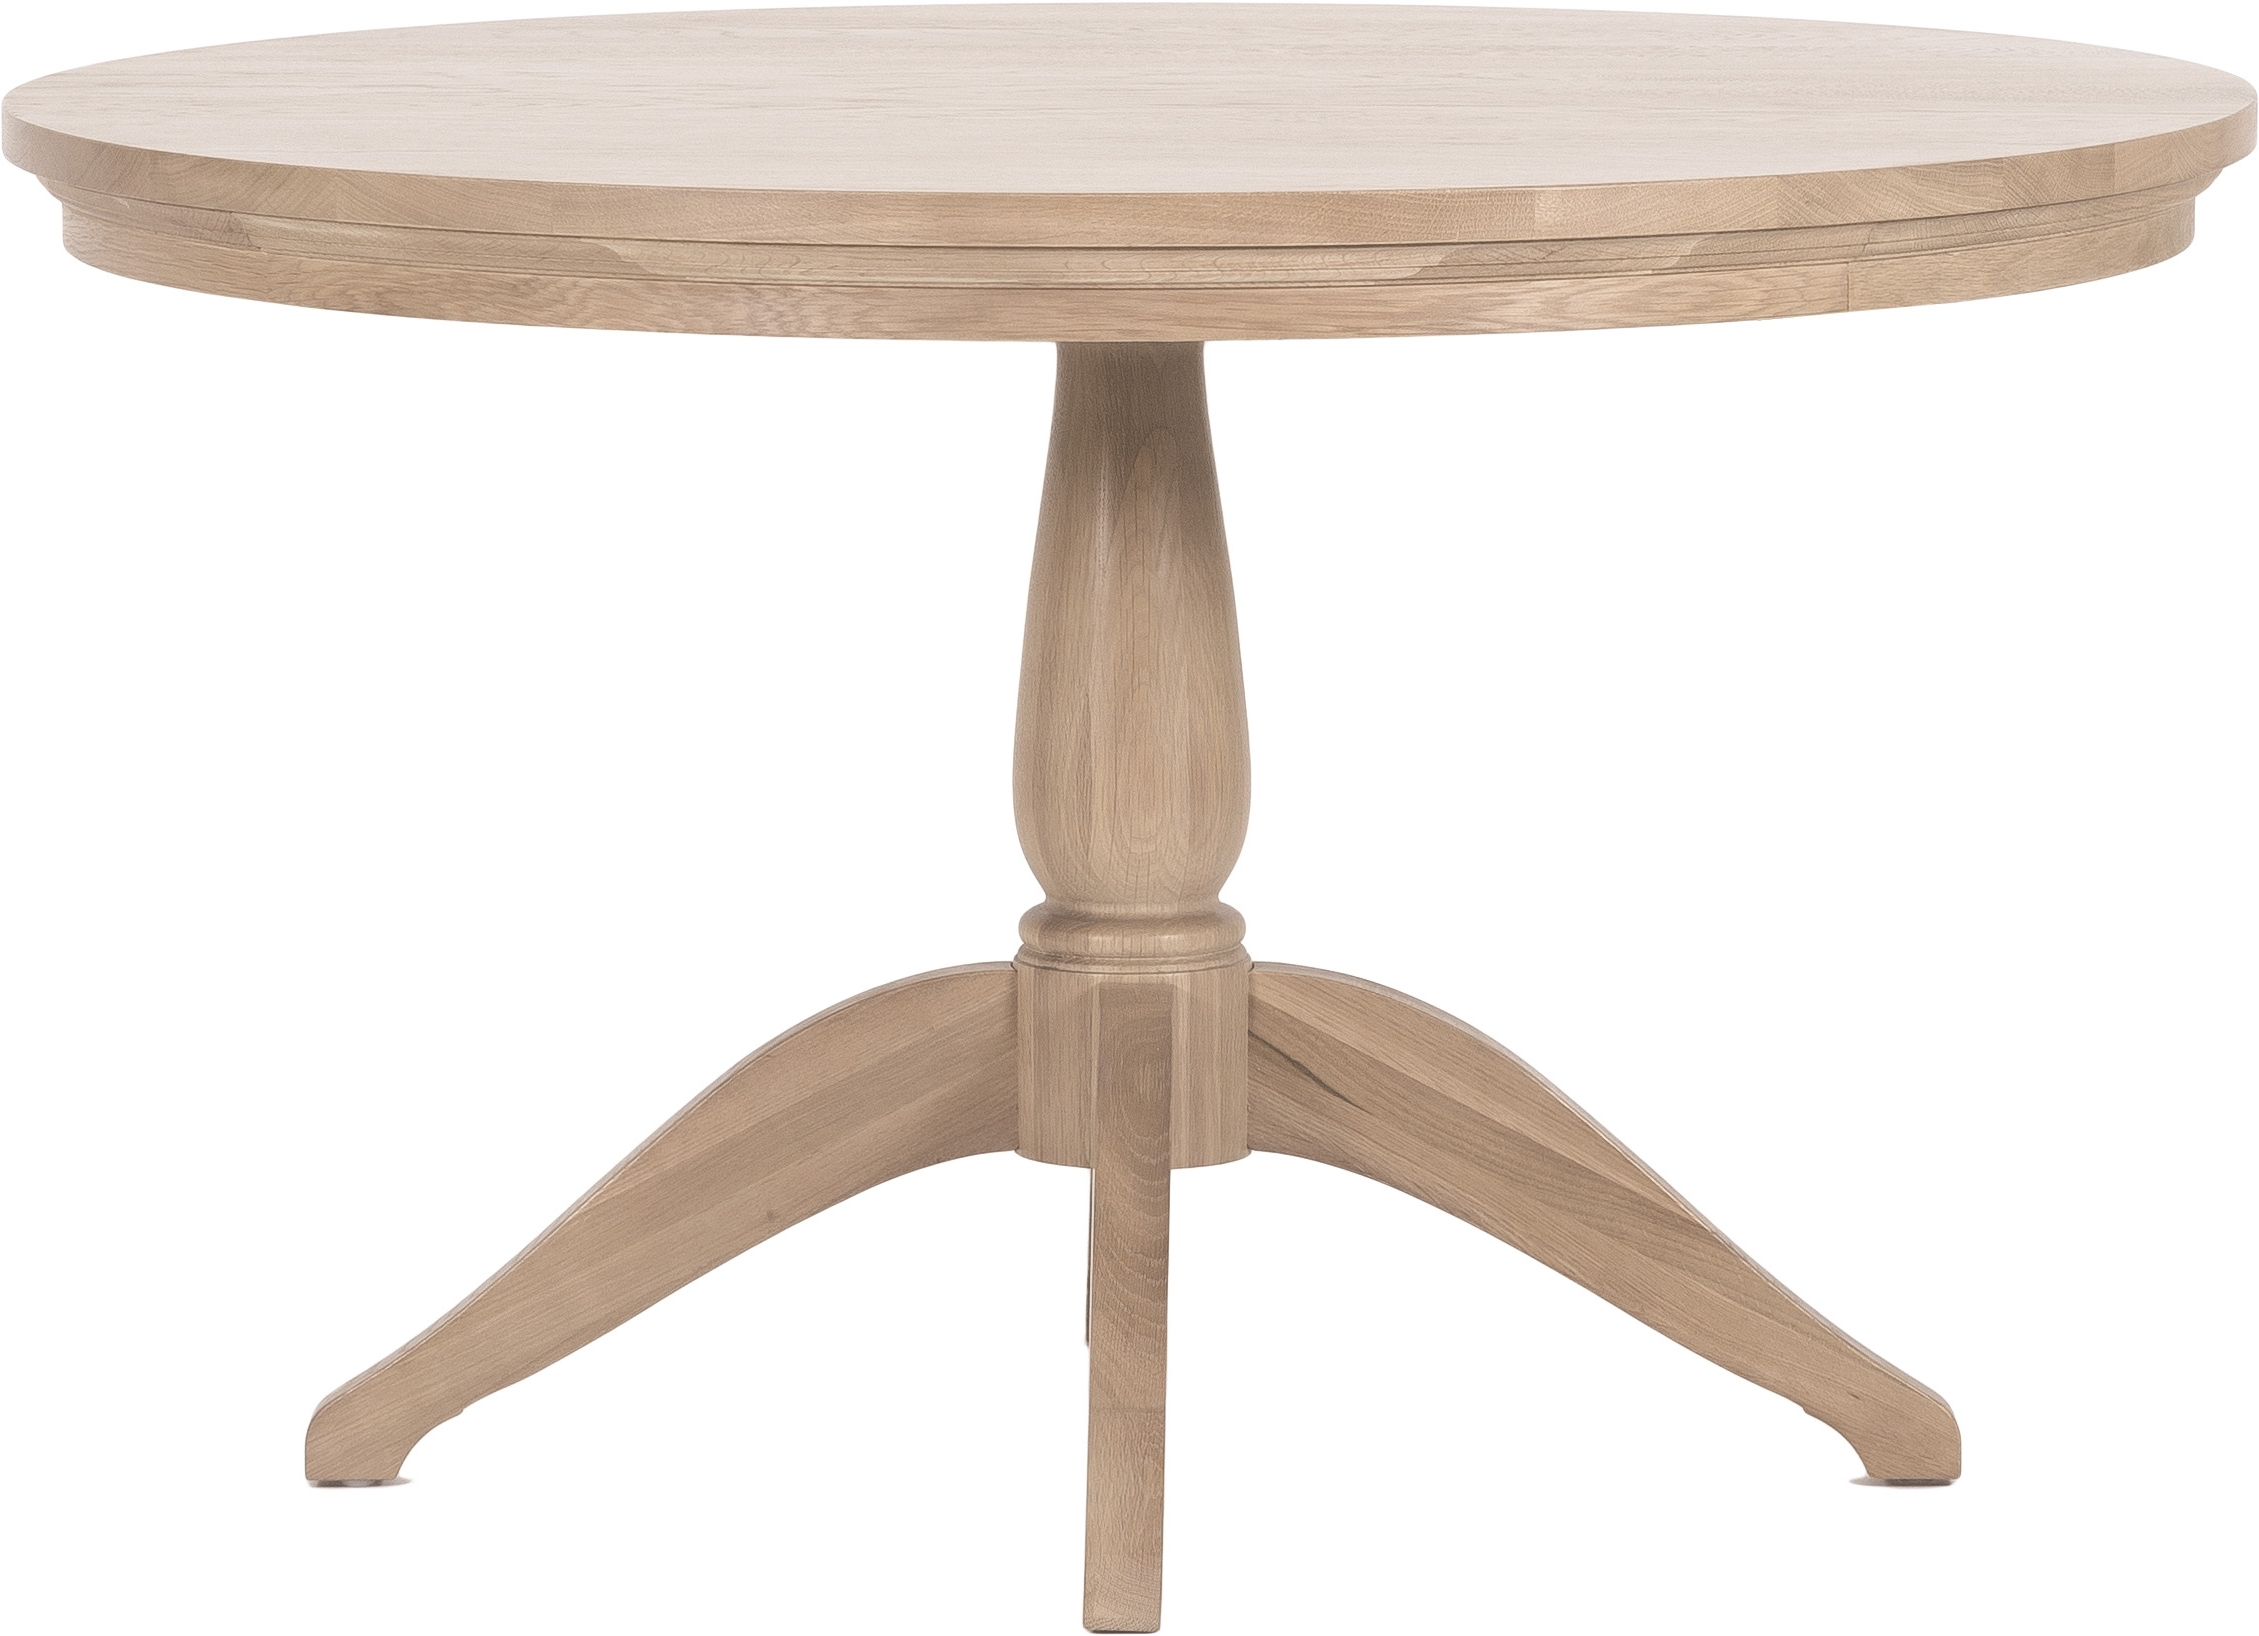 Well Known Circular Oak Dining Tables Within Henley Circular Oak Dining Table Uk (View 24 of 25)